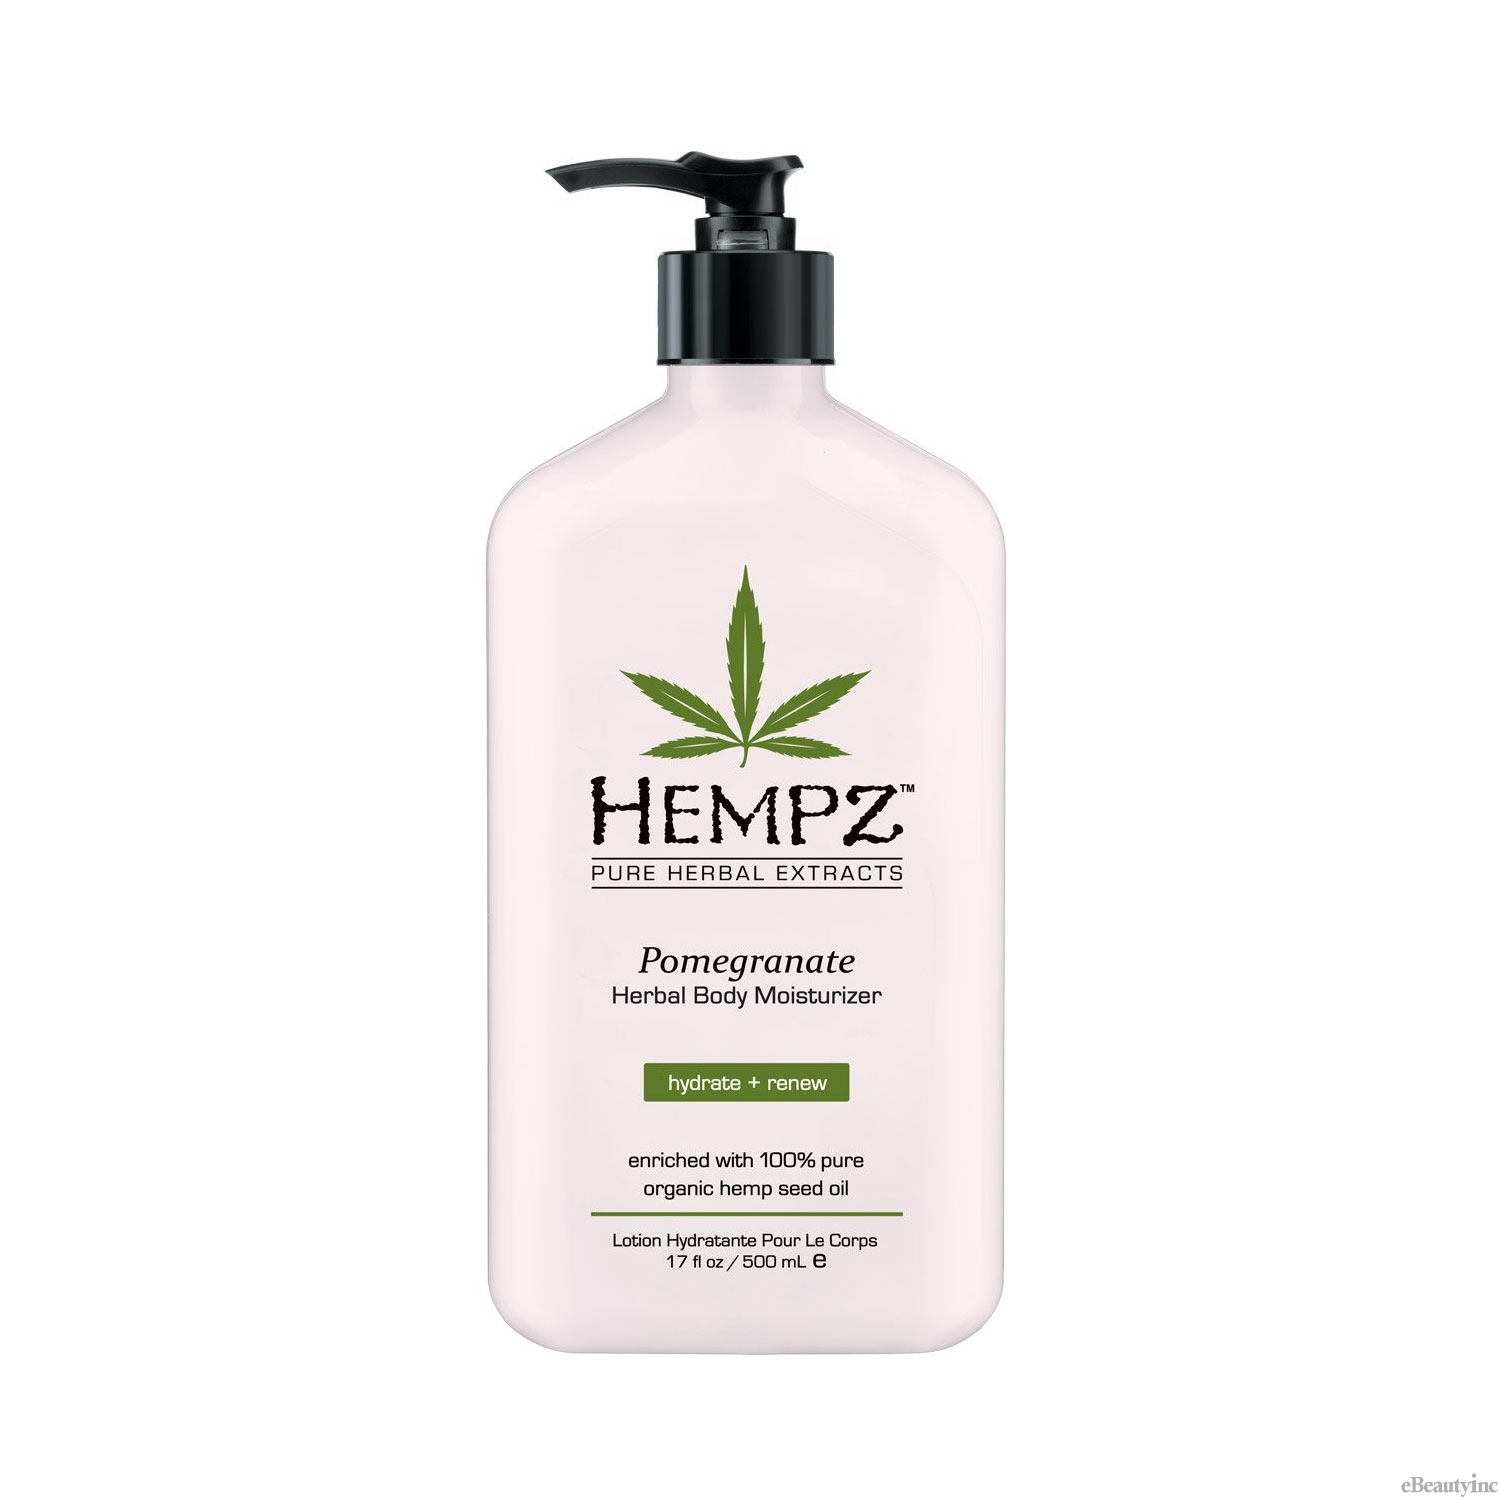 Hempz Pomegranate Herbal Body Moisturizer Lotion - 17oz